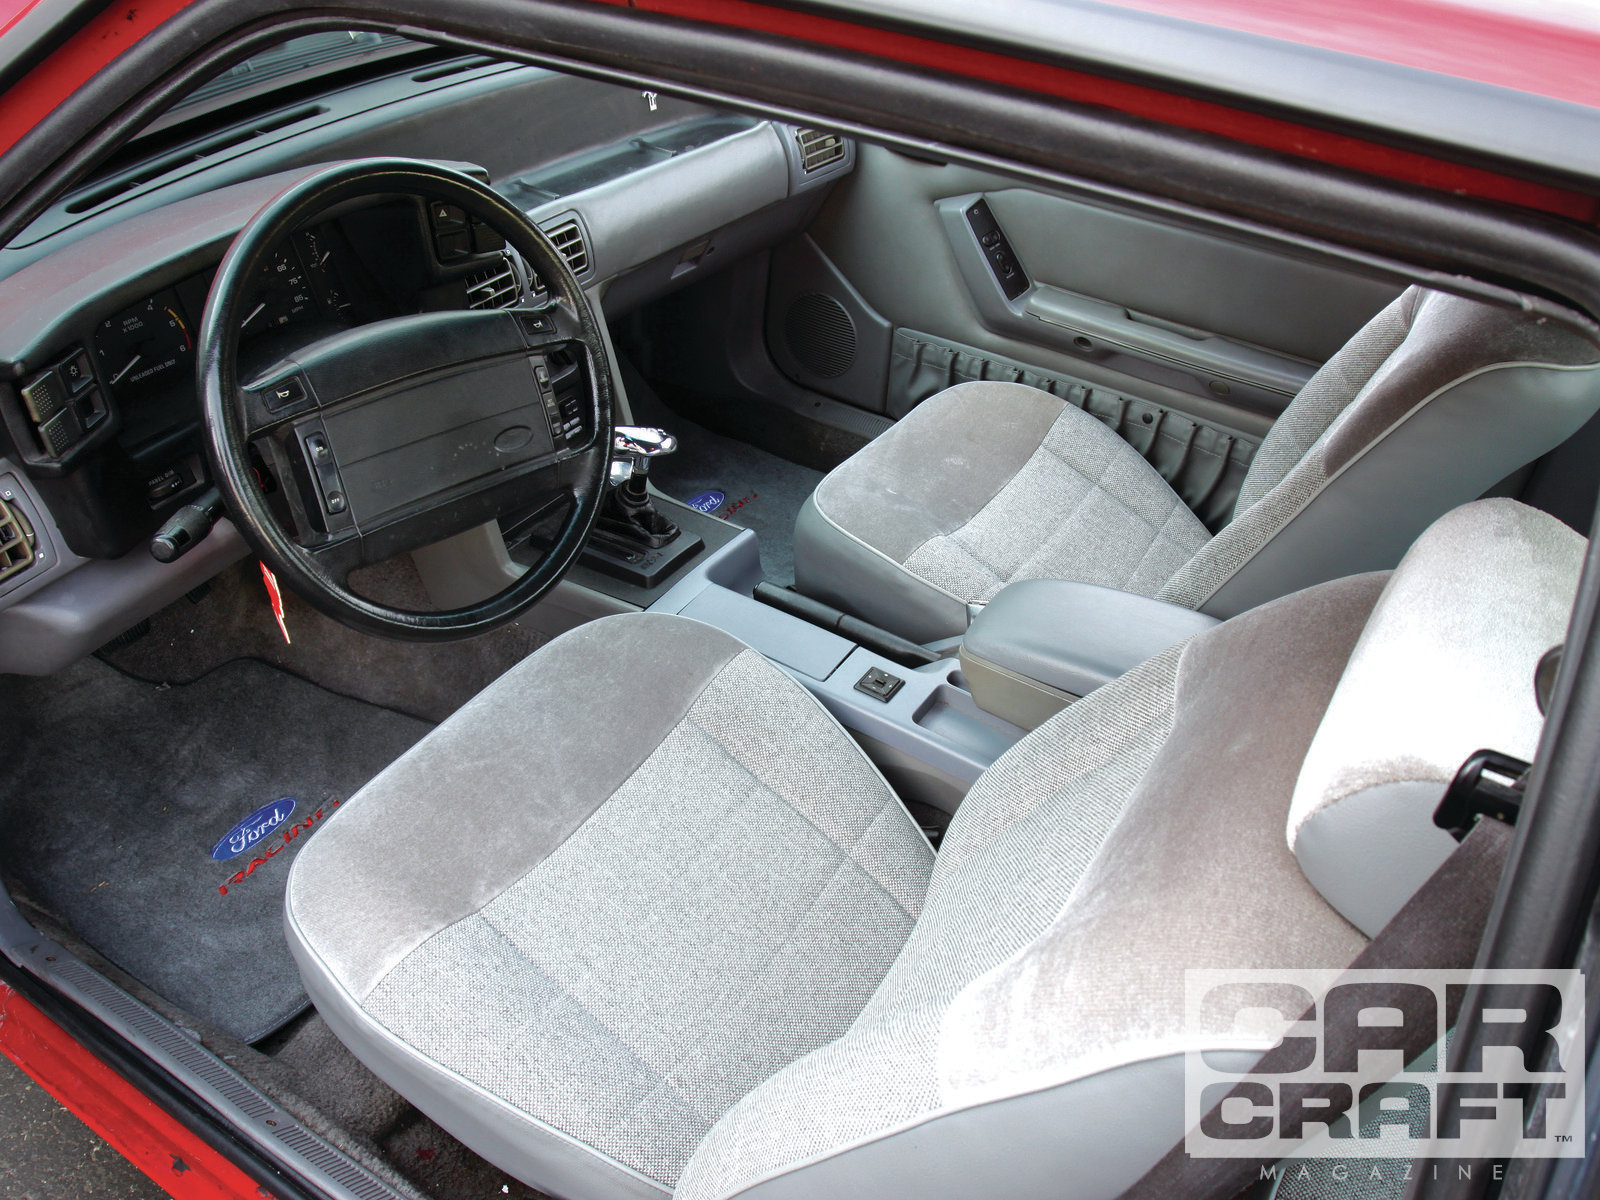 1993 Ford Mustang Image 12